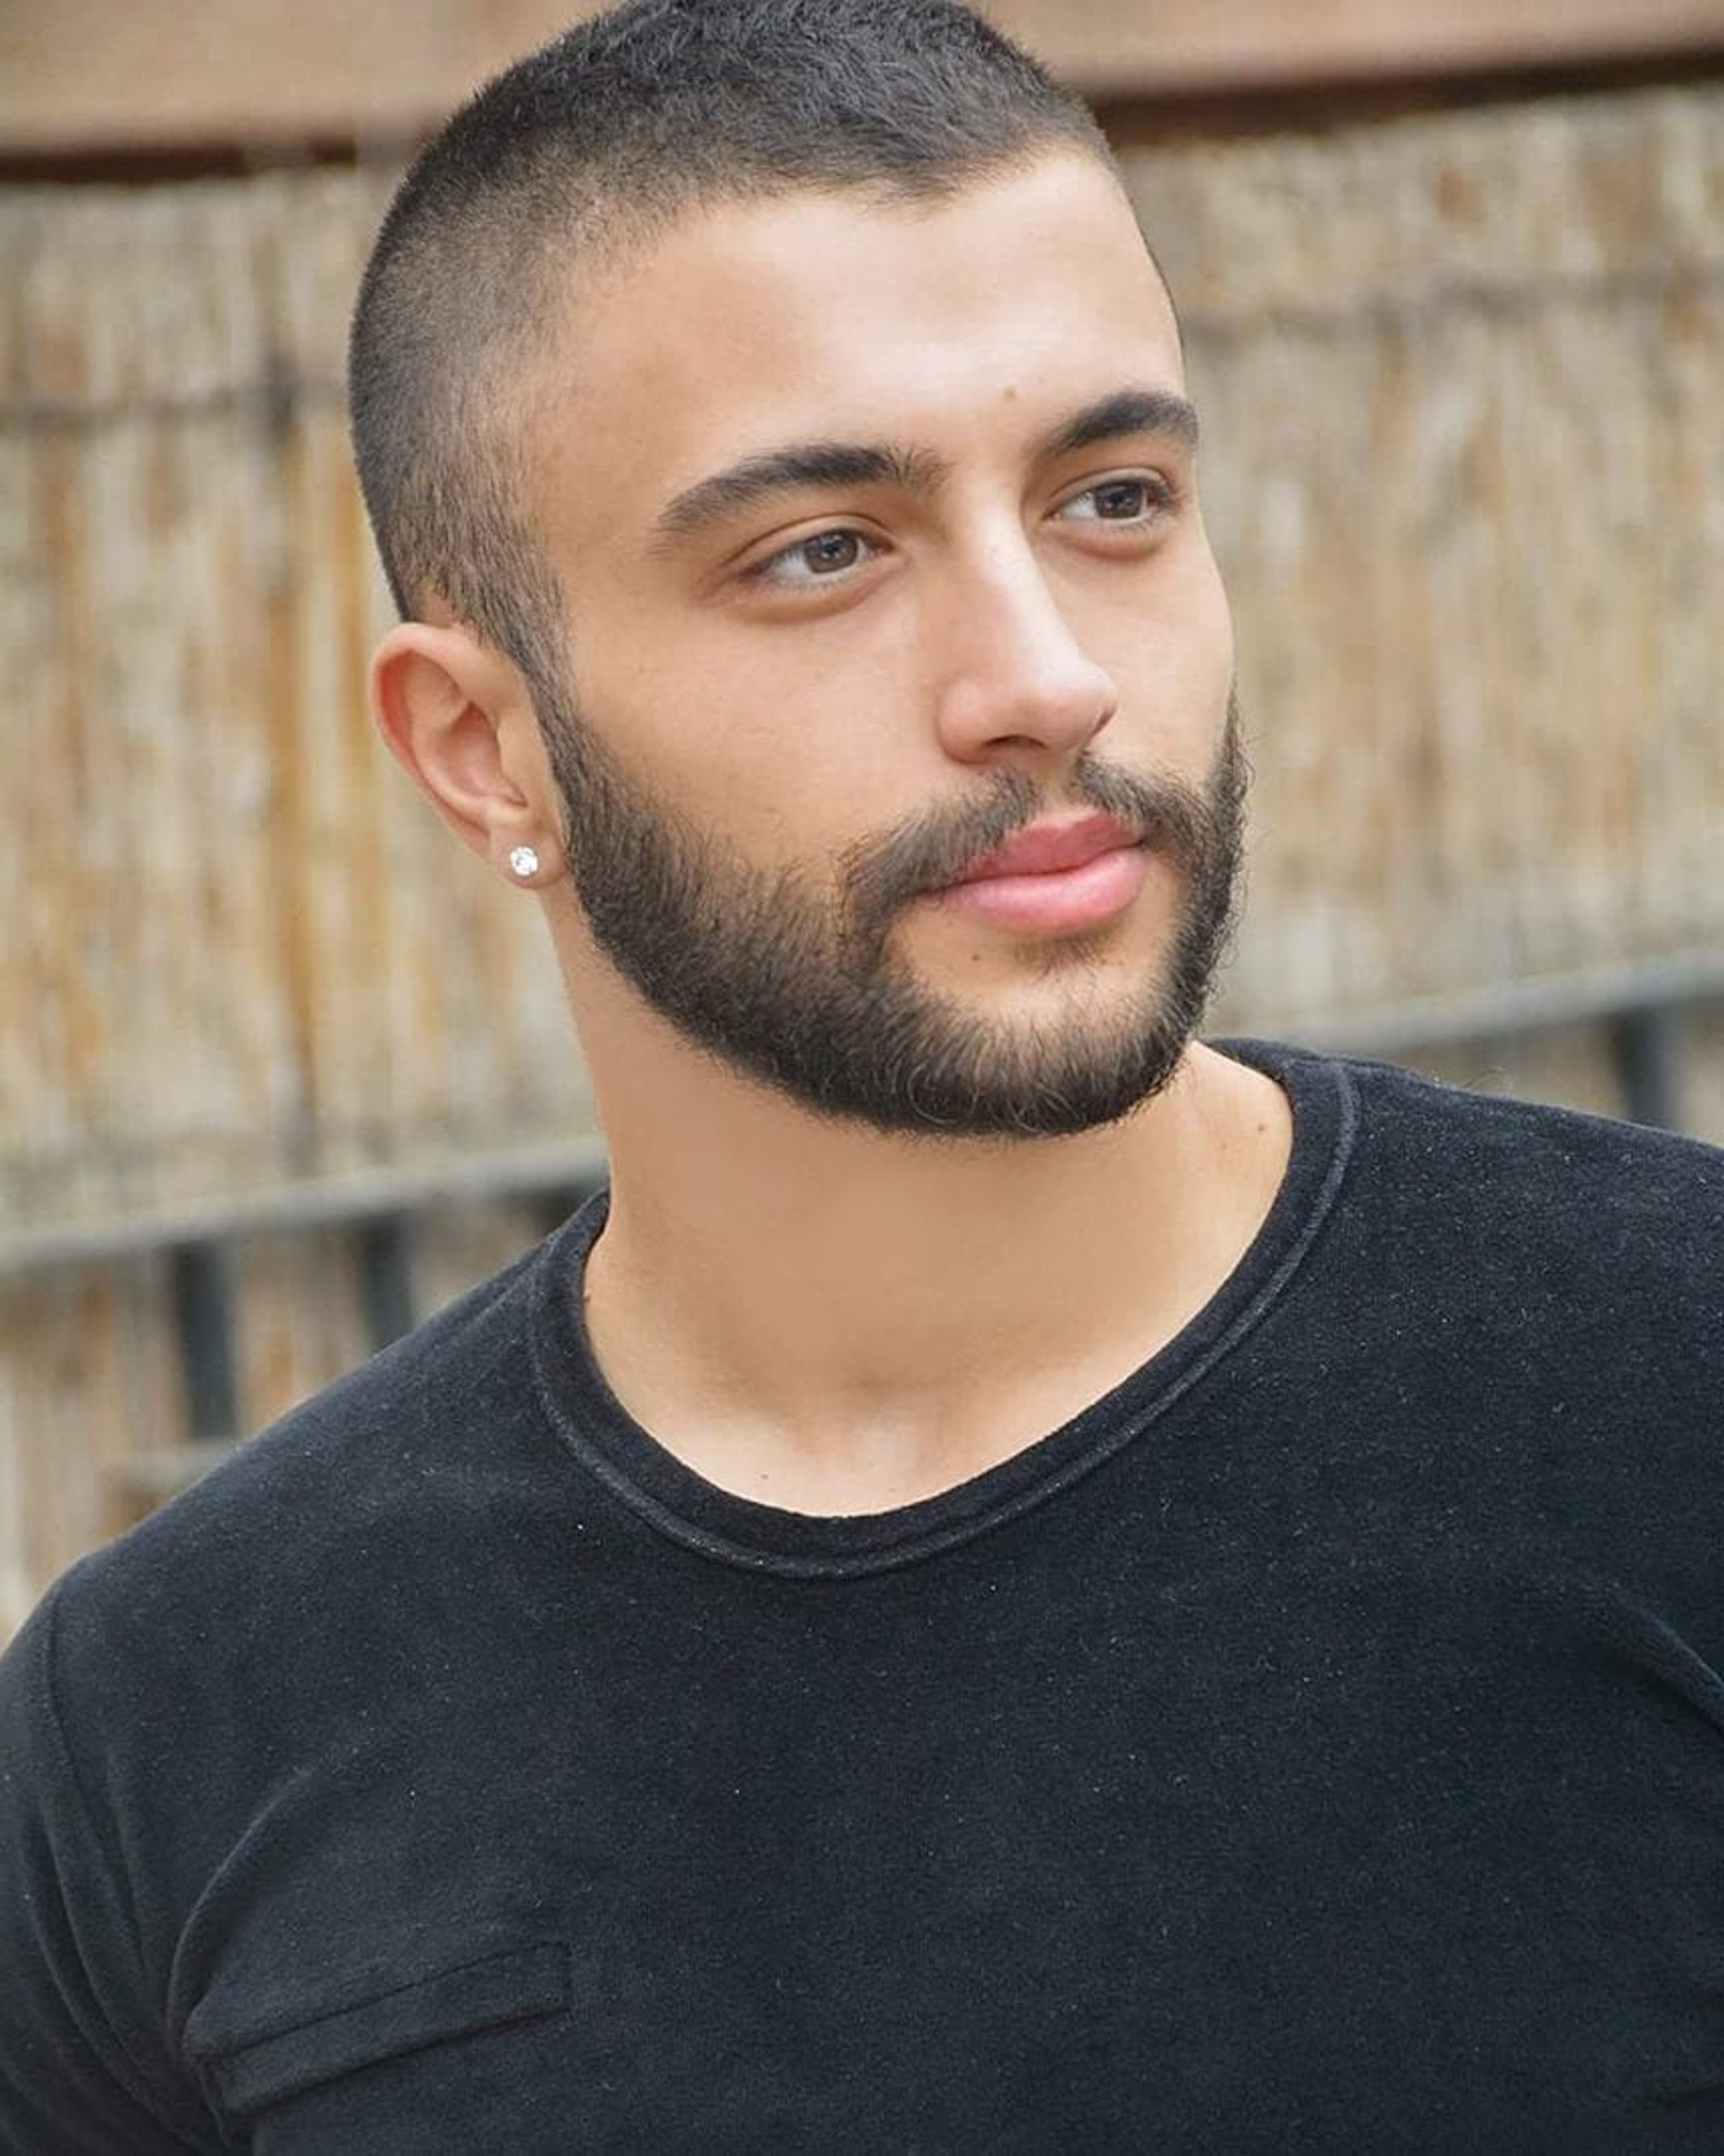 A buzz cut with a stubble beard.